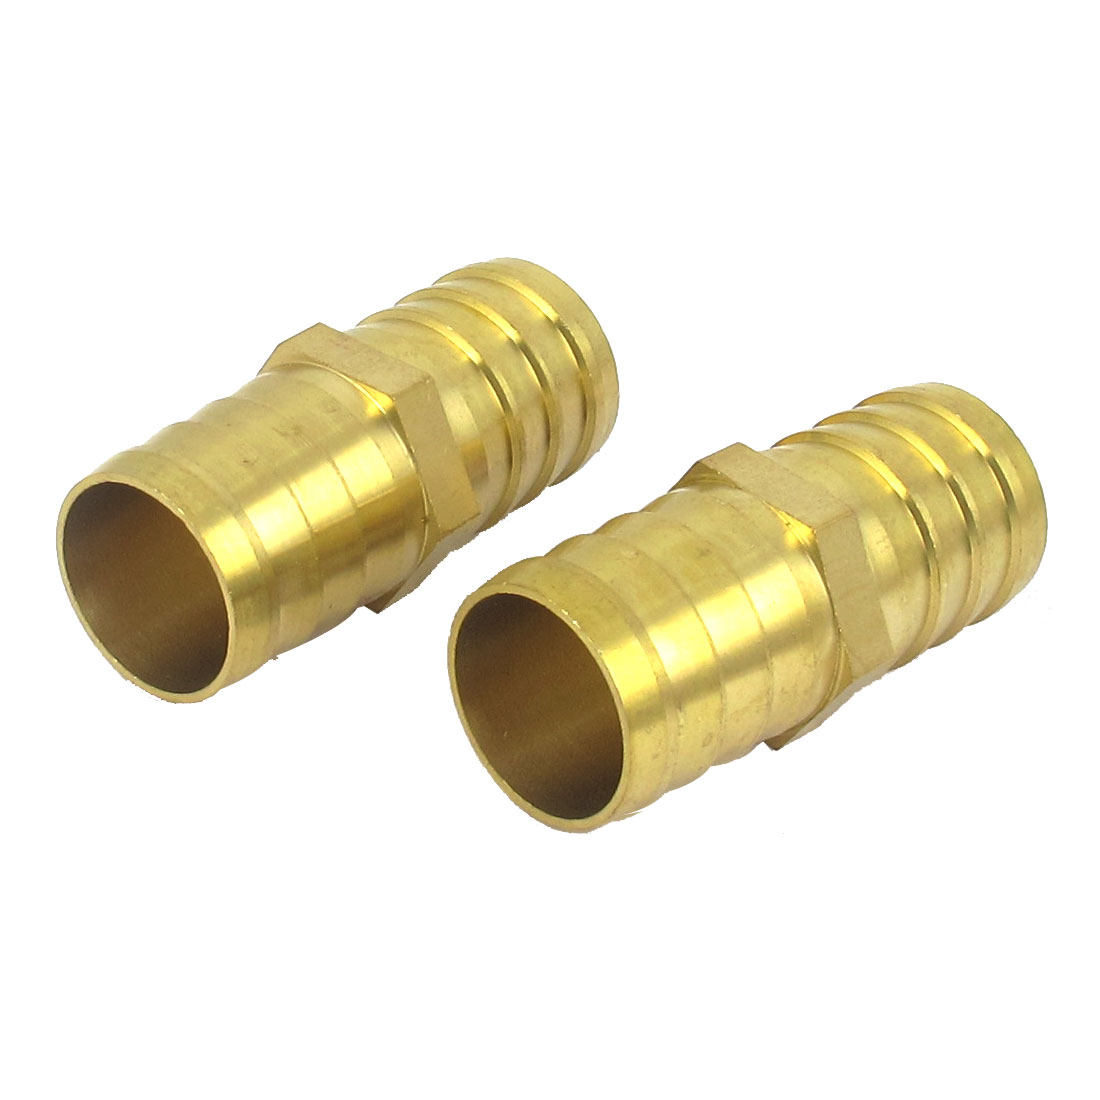 2 Pcs 25mm Outside Dia Pneumatic Air Water Gas Hose Piping Barb Coupler